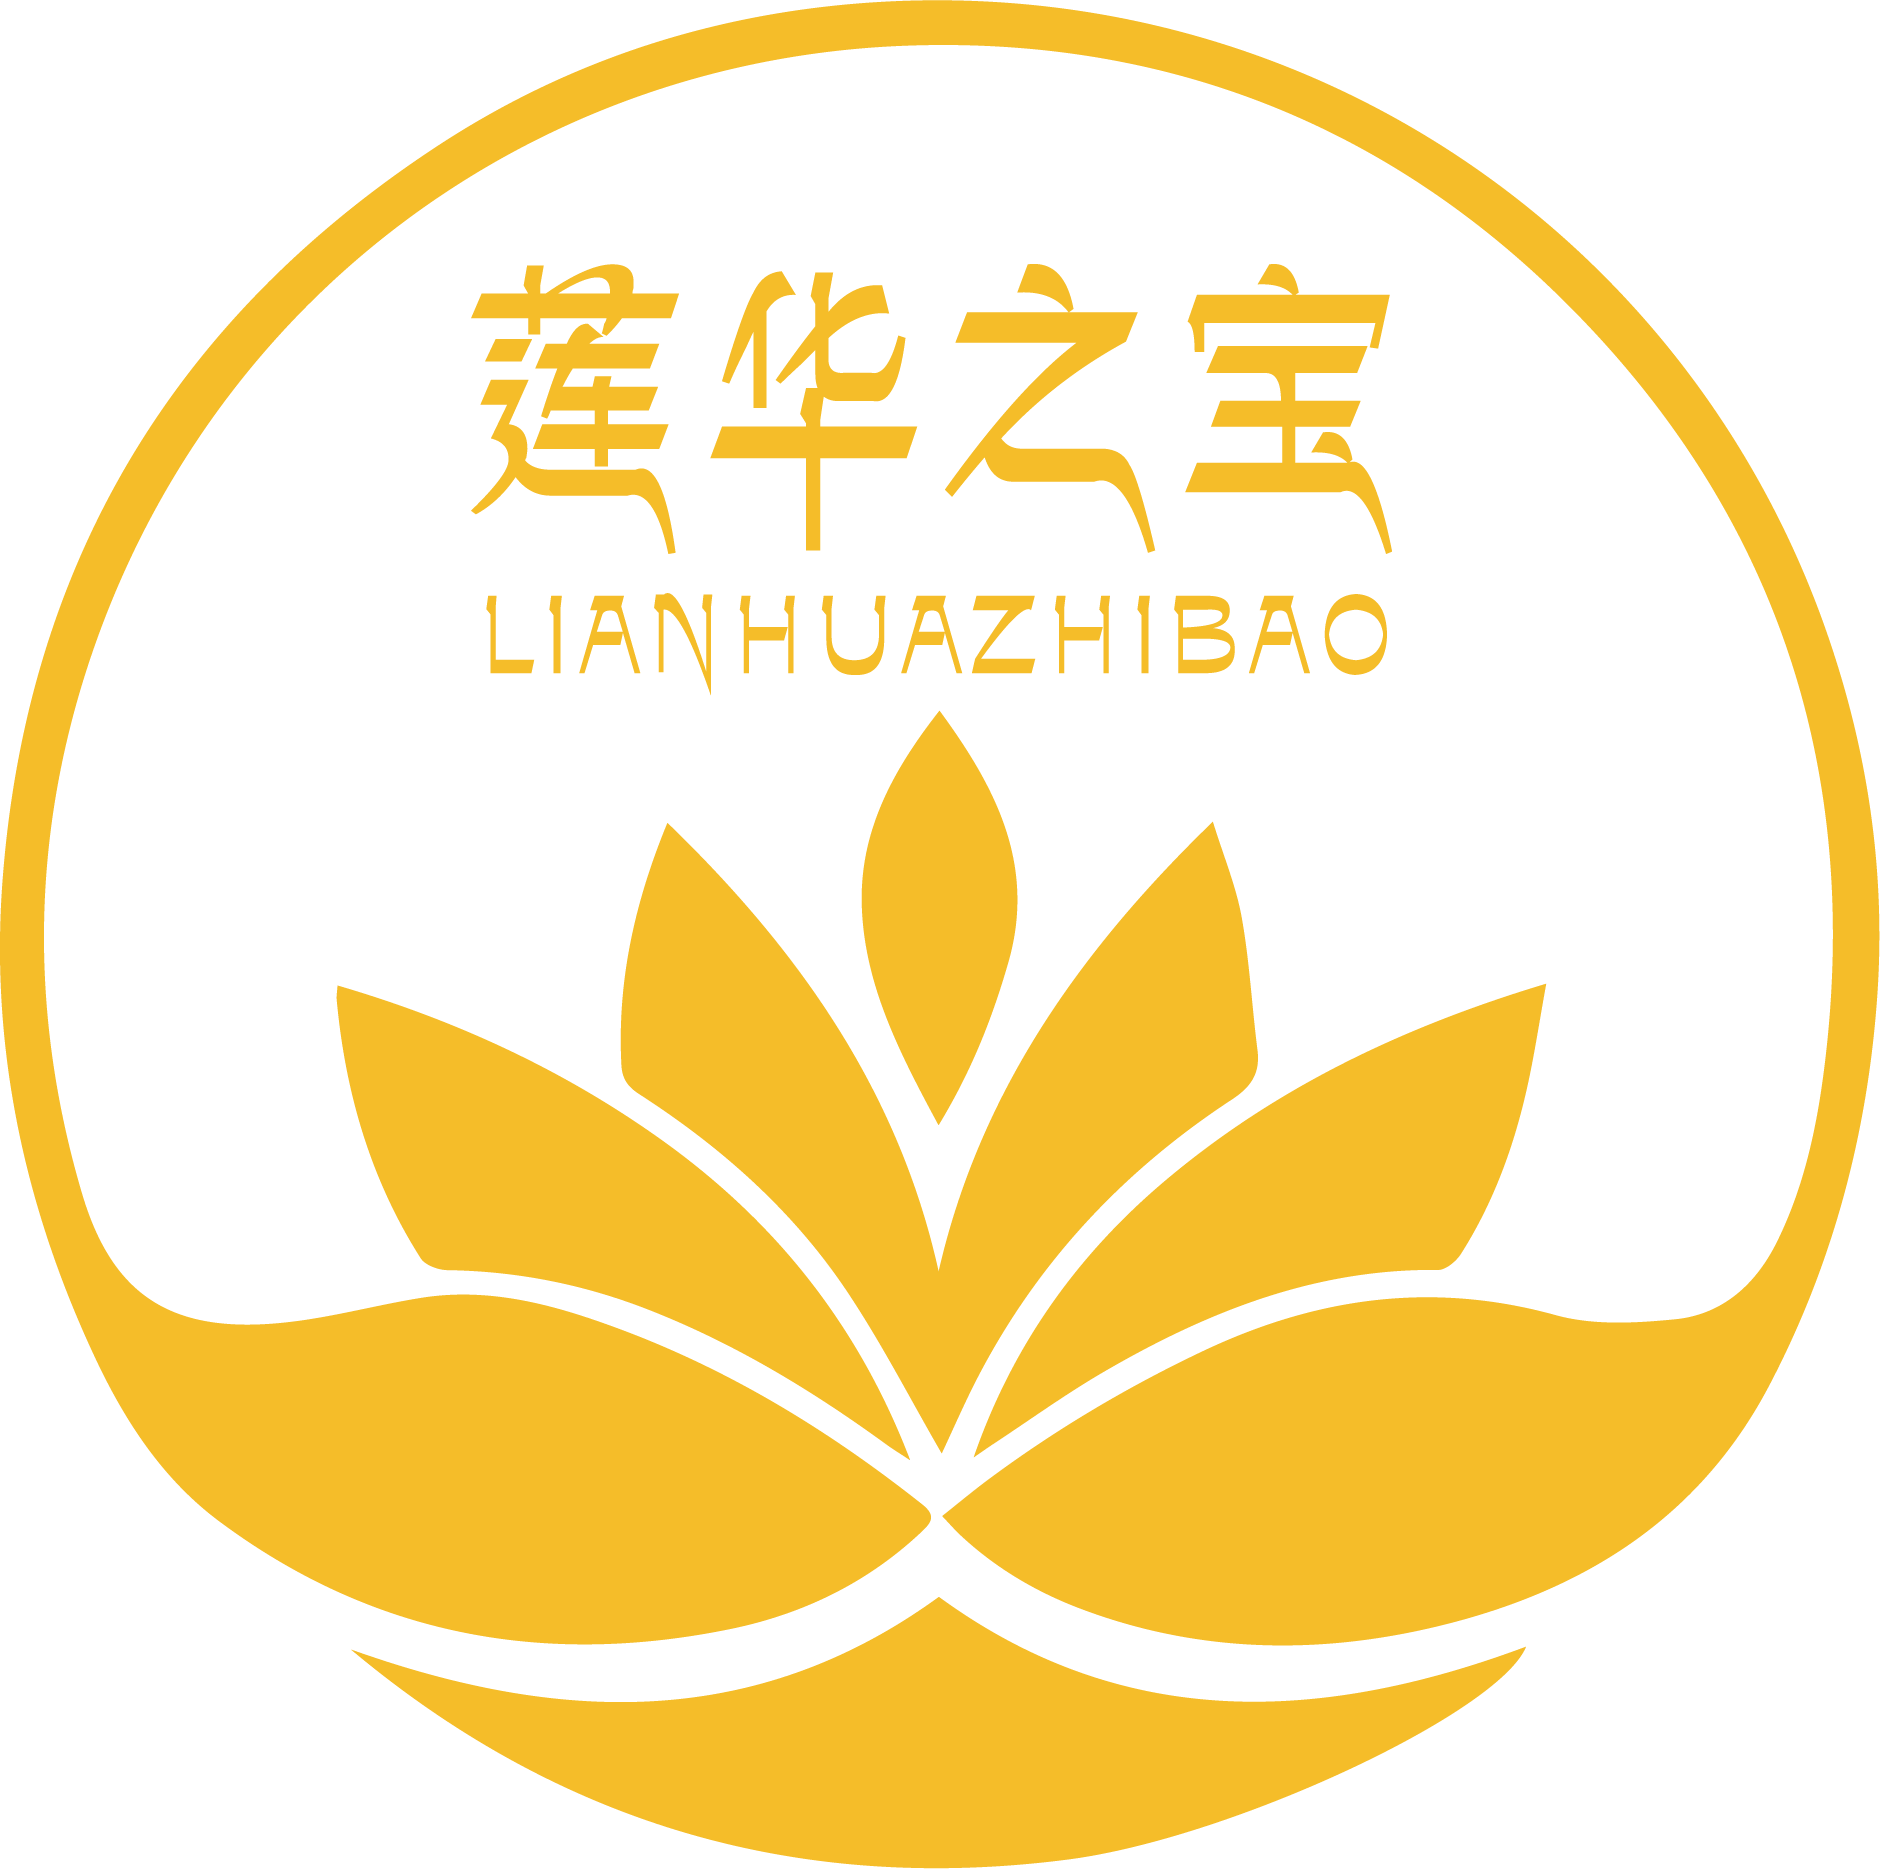 Tibet Chanfa Lianhuazhibao Development co.LTD